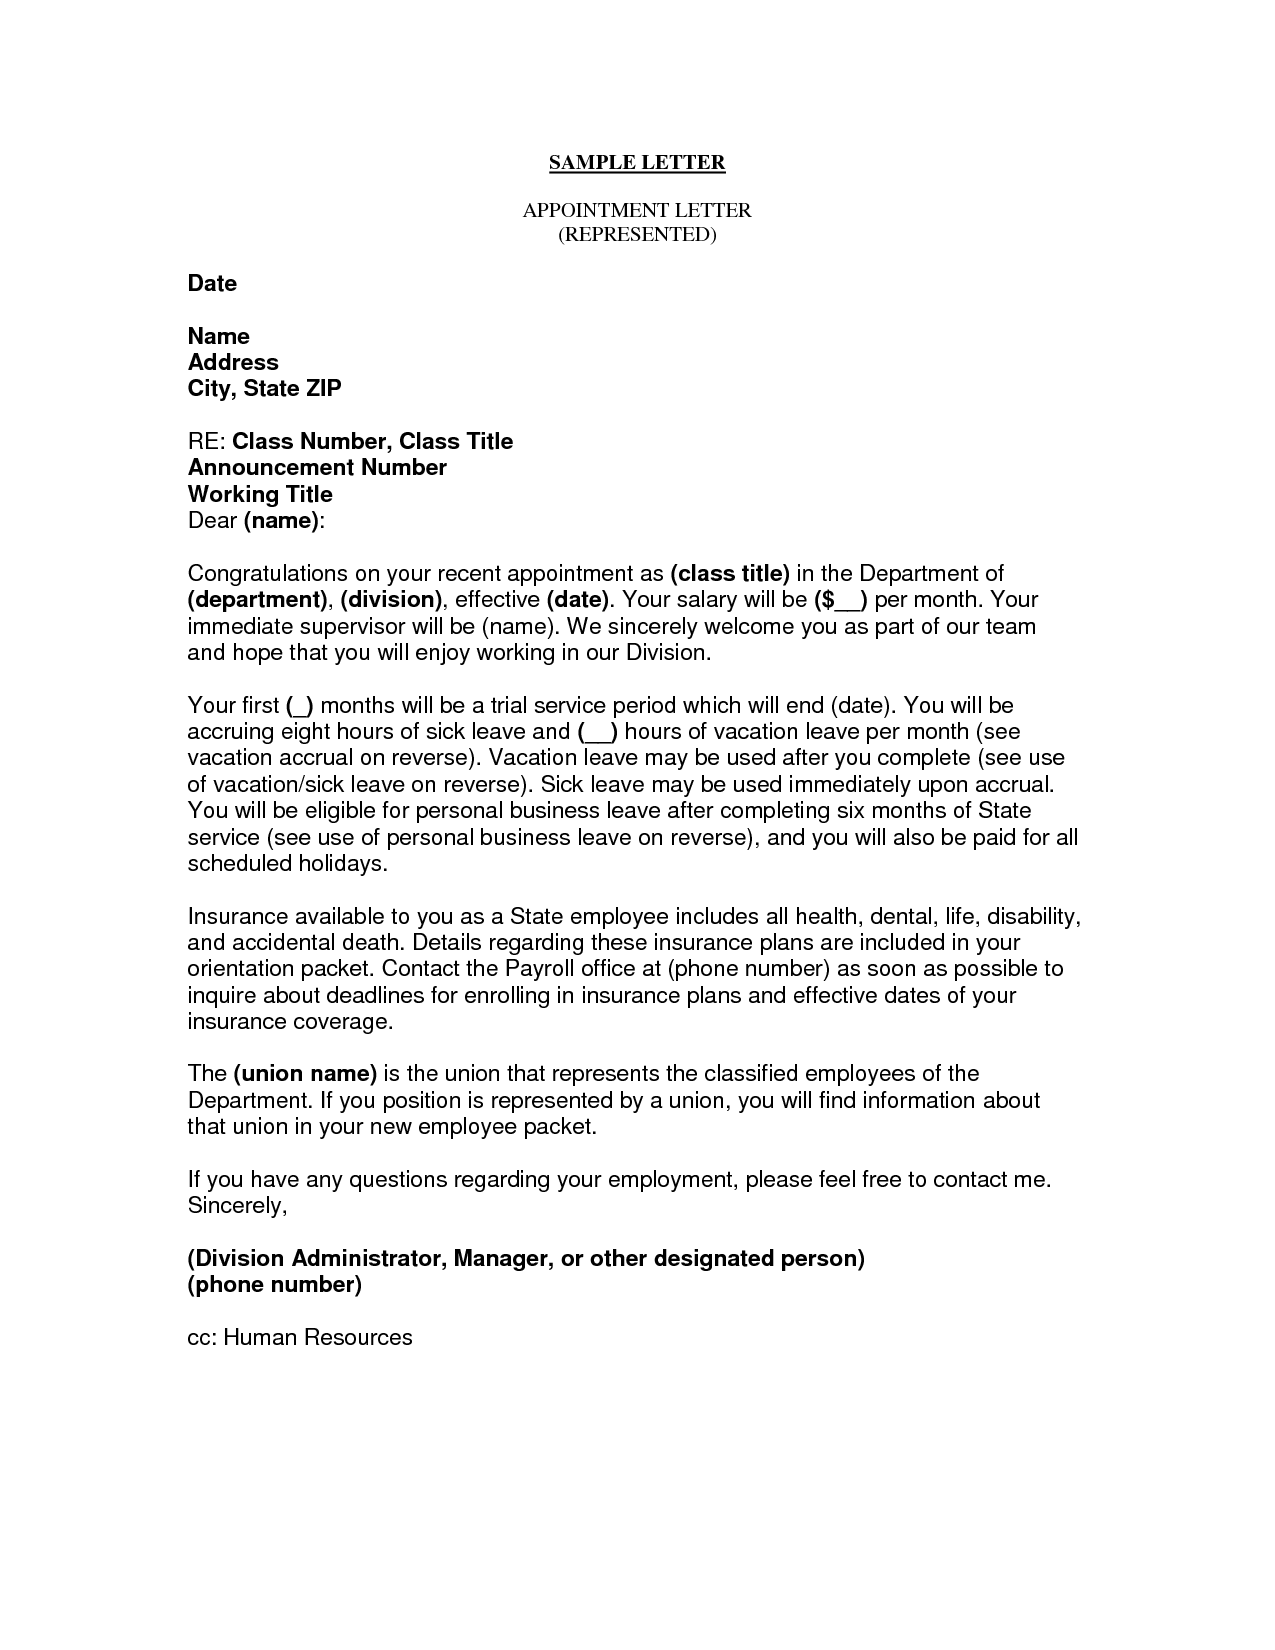 business appointment letter this letter is used in any business organizations for getting the appointment